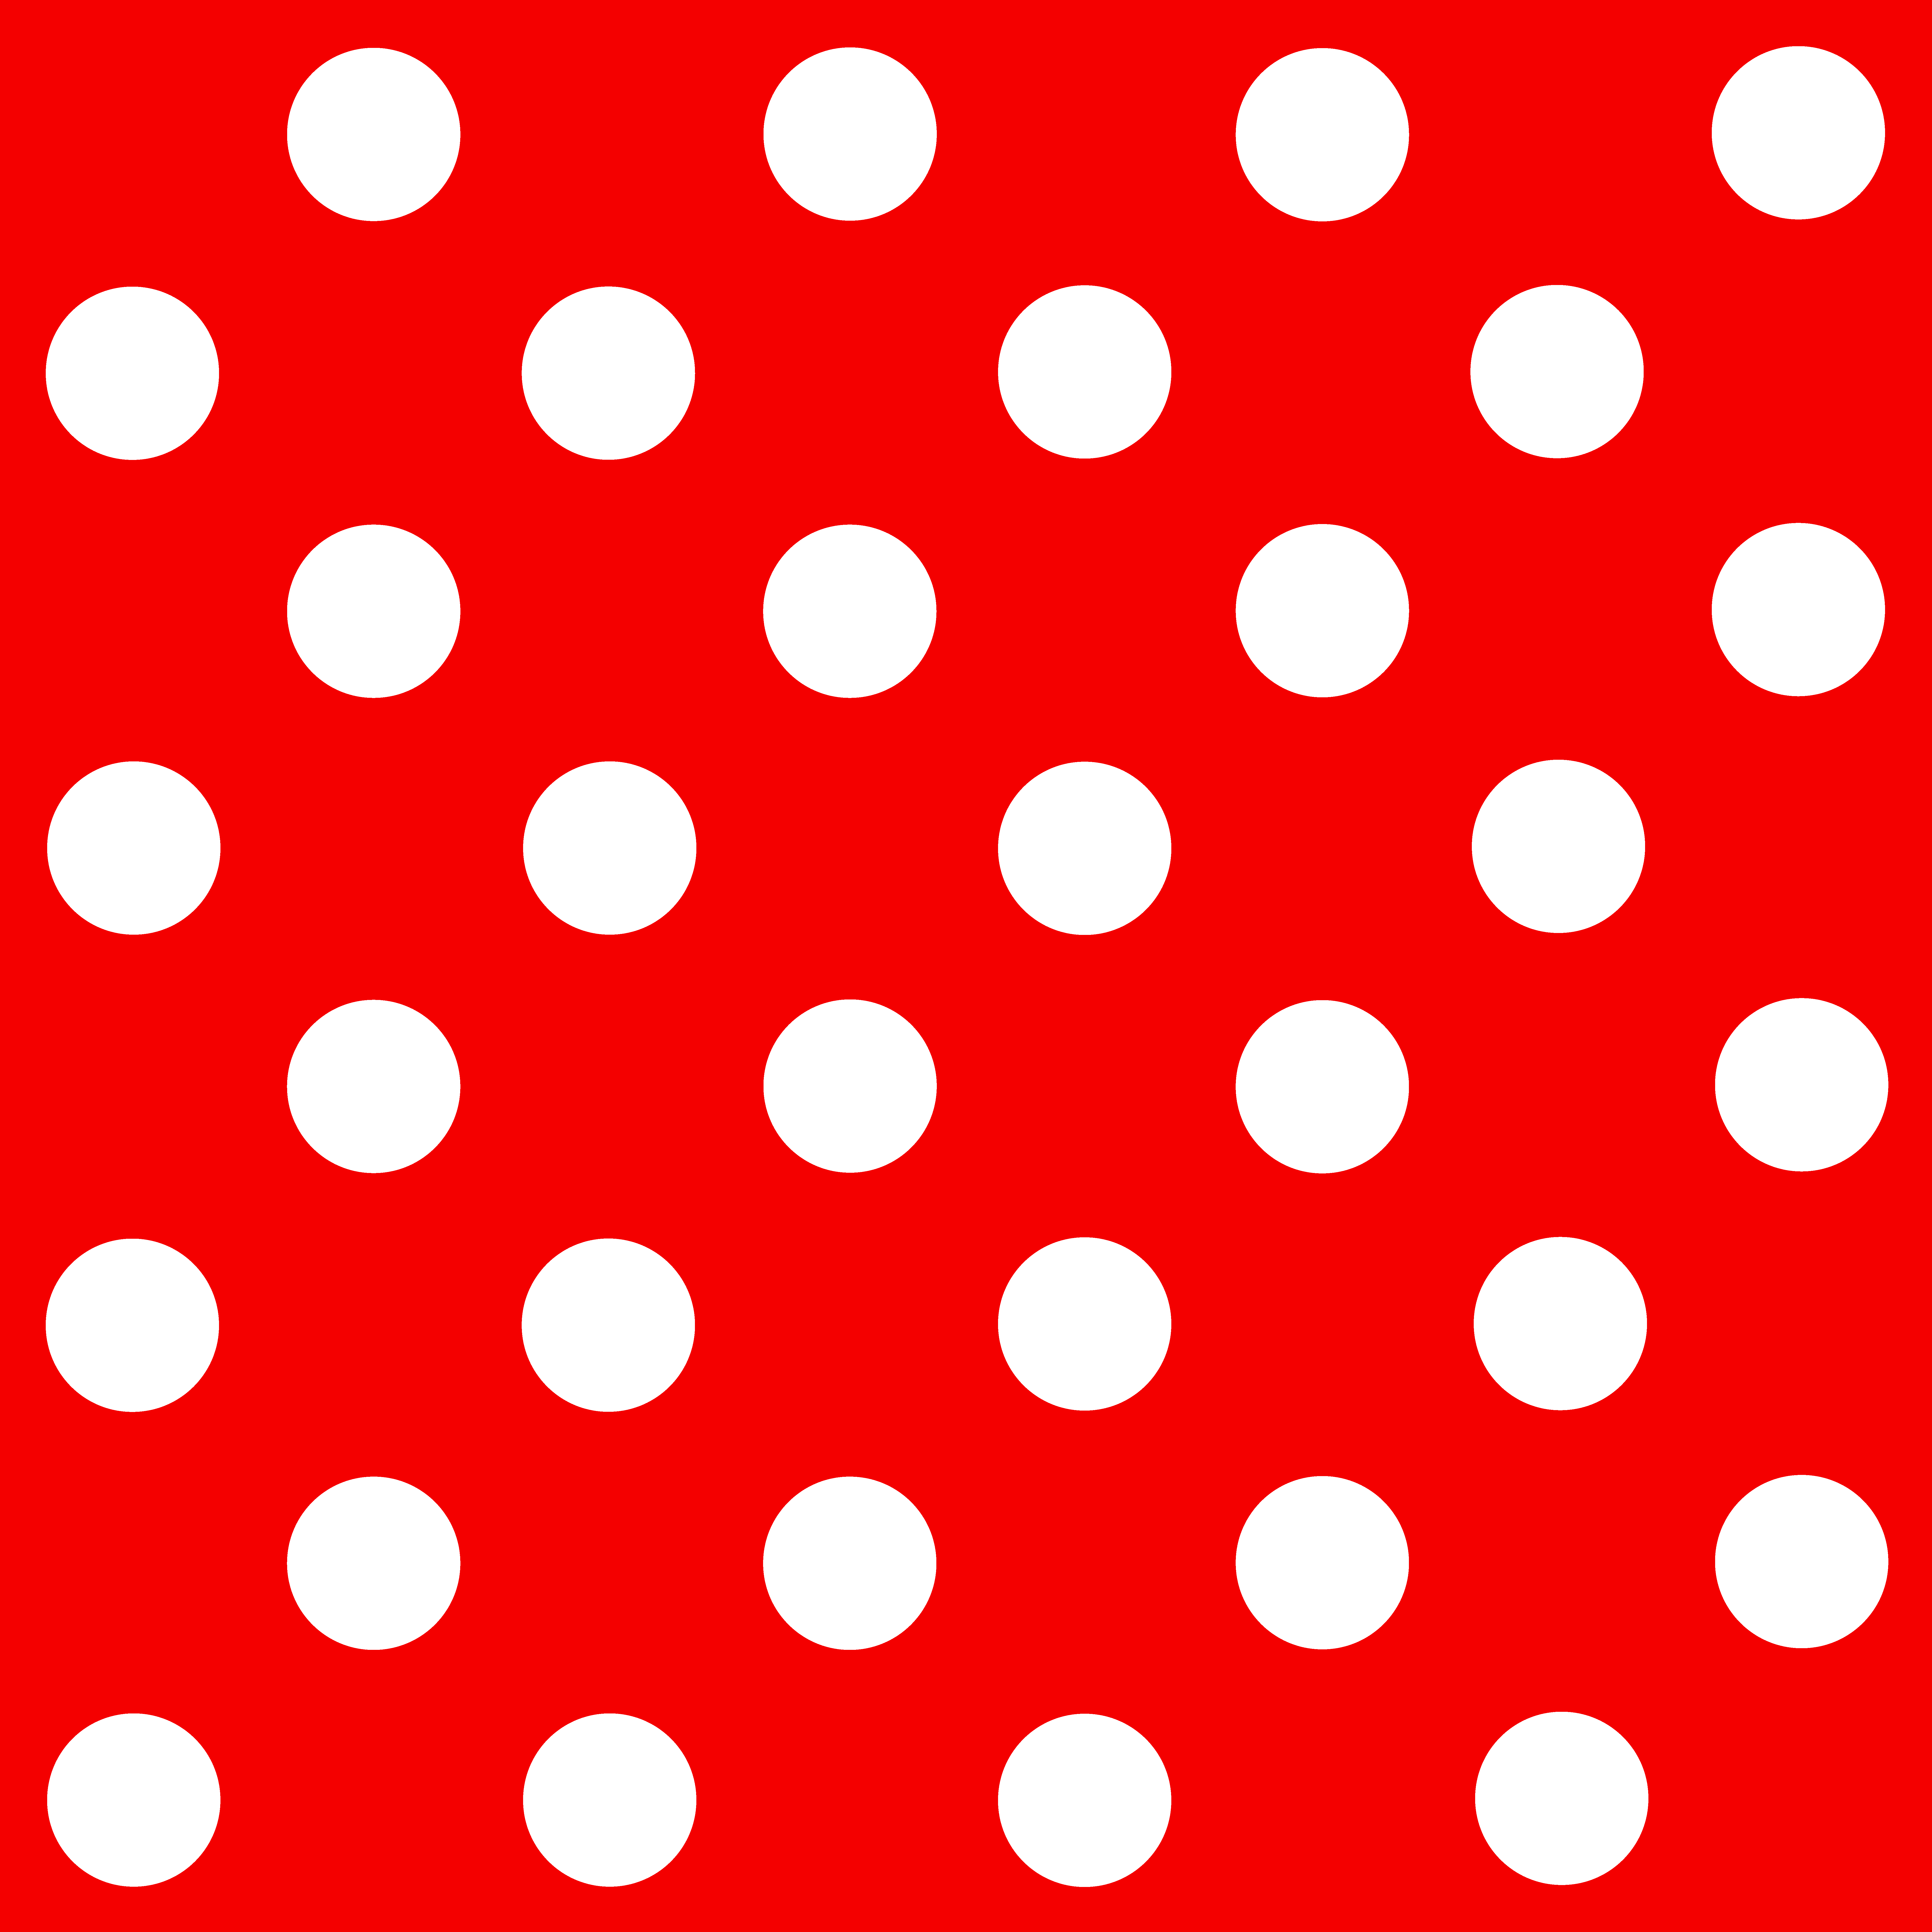 Pink Polka Dot Wallpaper: White Polka Dot Wallpaper